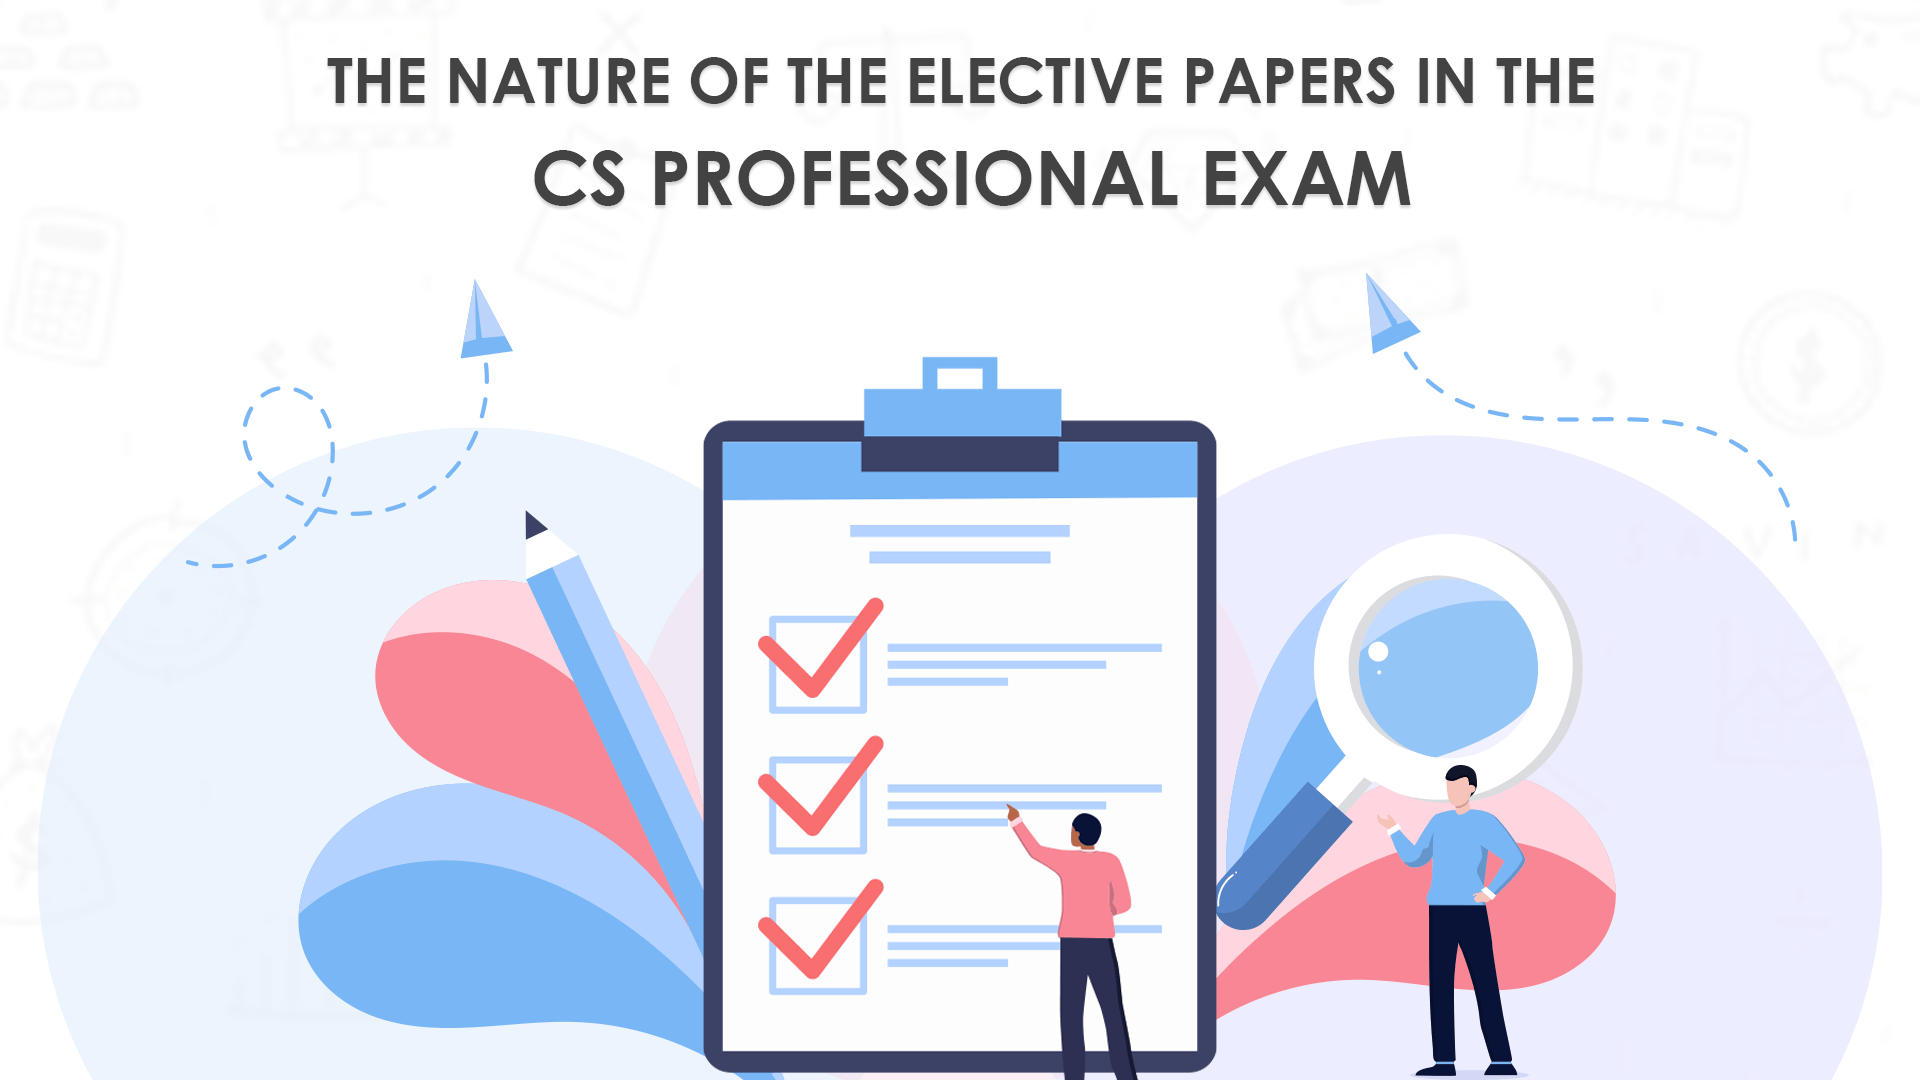 The Nature of the Elective Papers in the CS Professional Exam